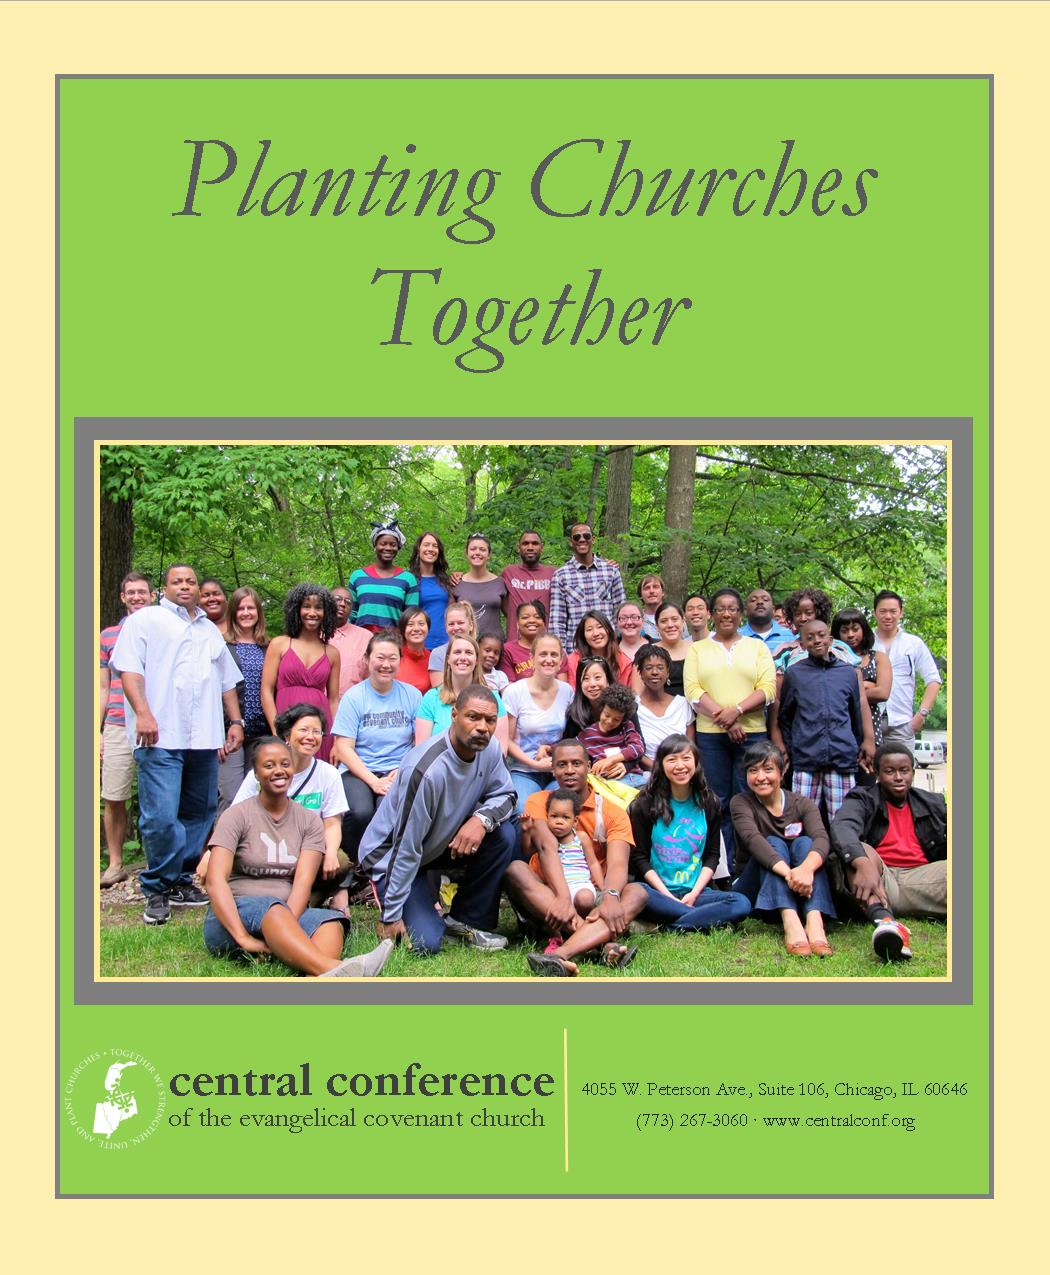 Church Planting Brochure 2014 green  85x7 print 8,1,2,7,6,3,4,5 Cover